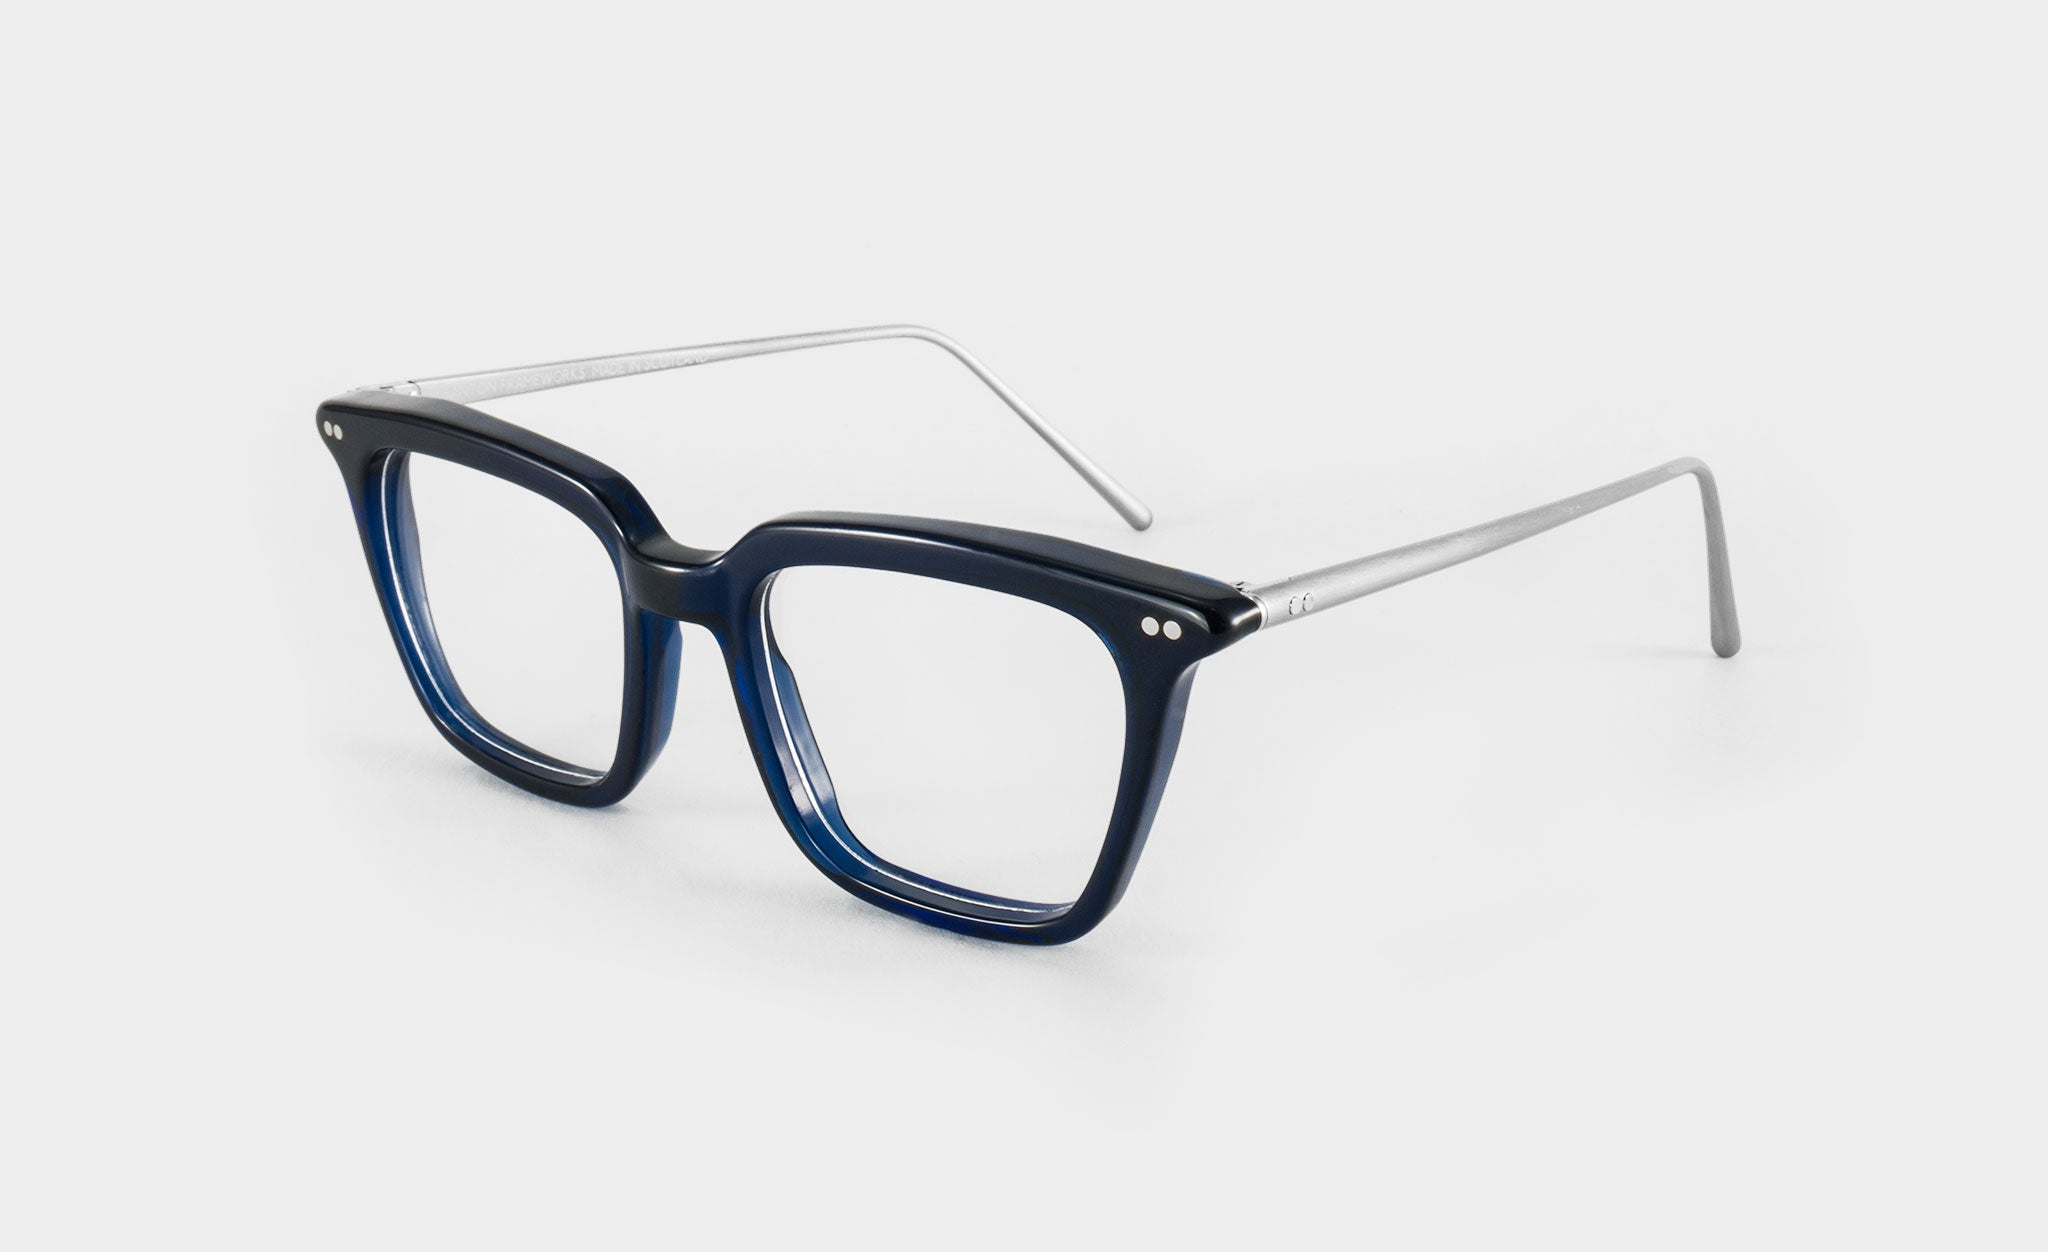 mens blue glasses frame square side view